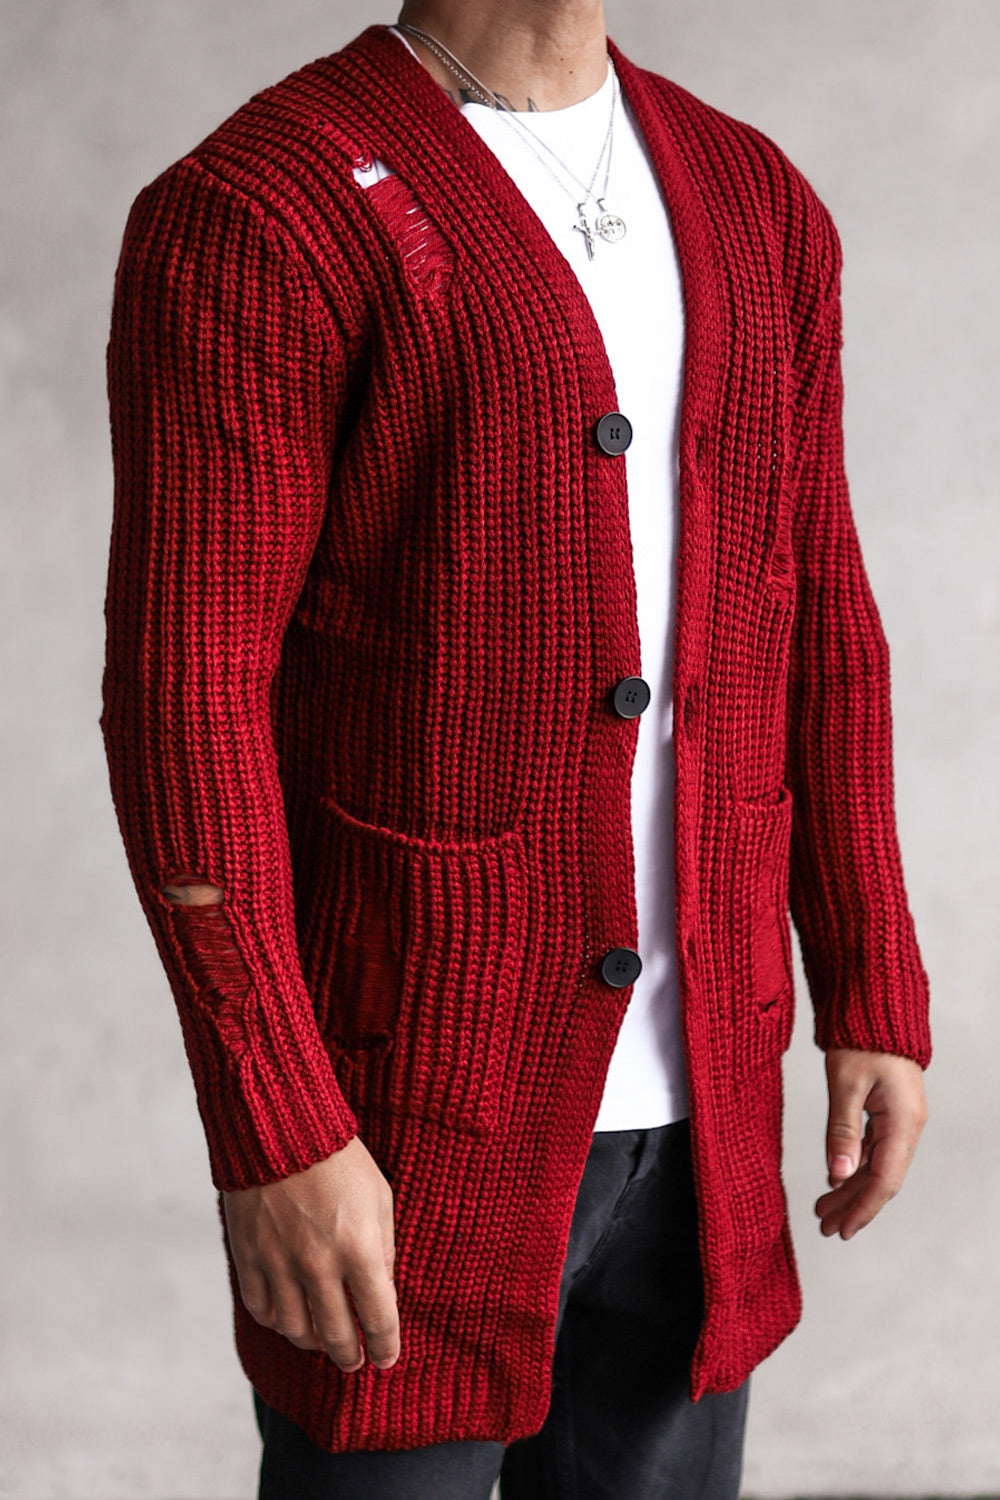 Knit Destroyed Cardigan 7027DR